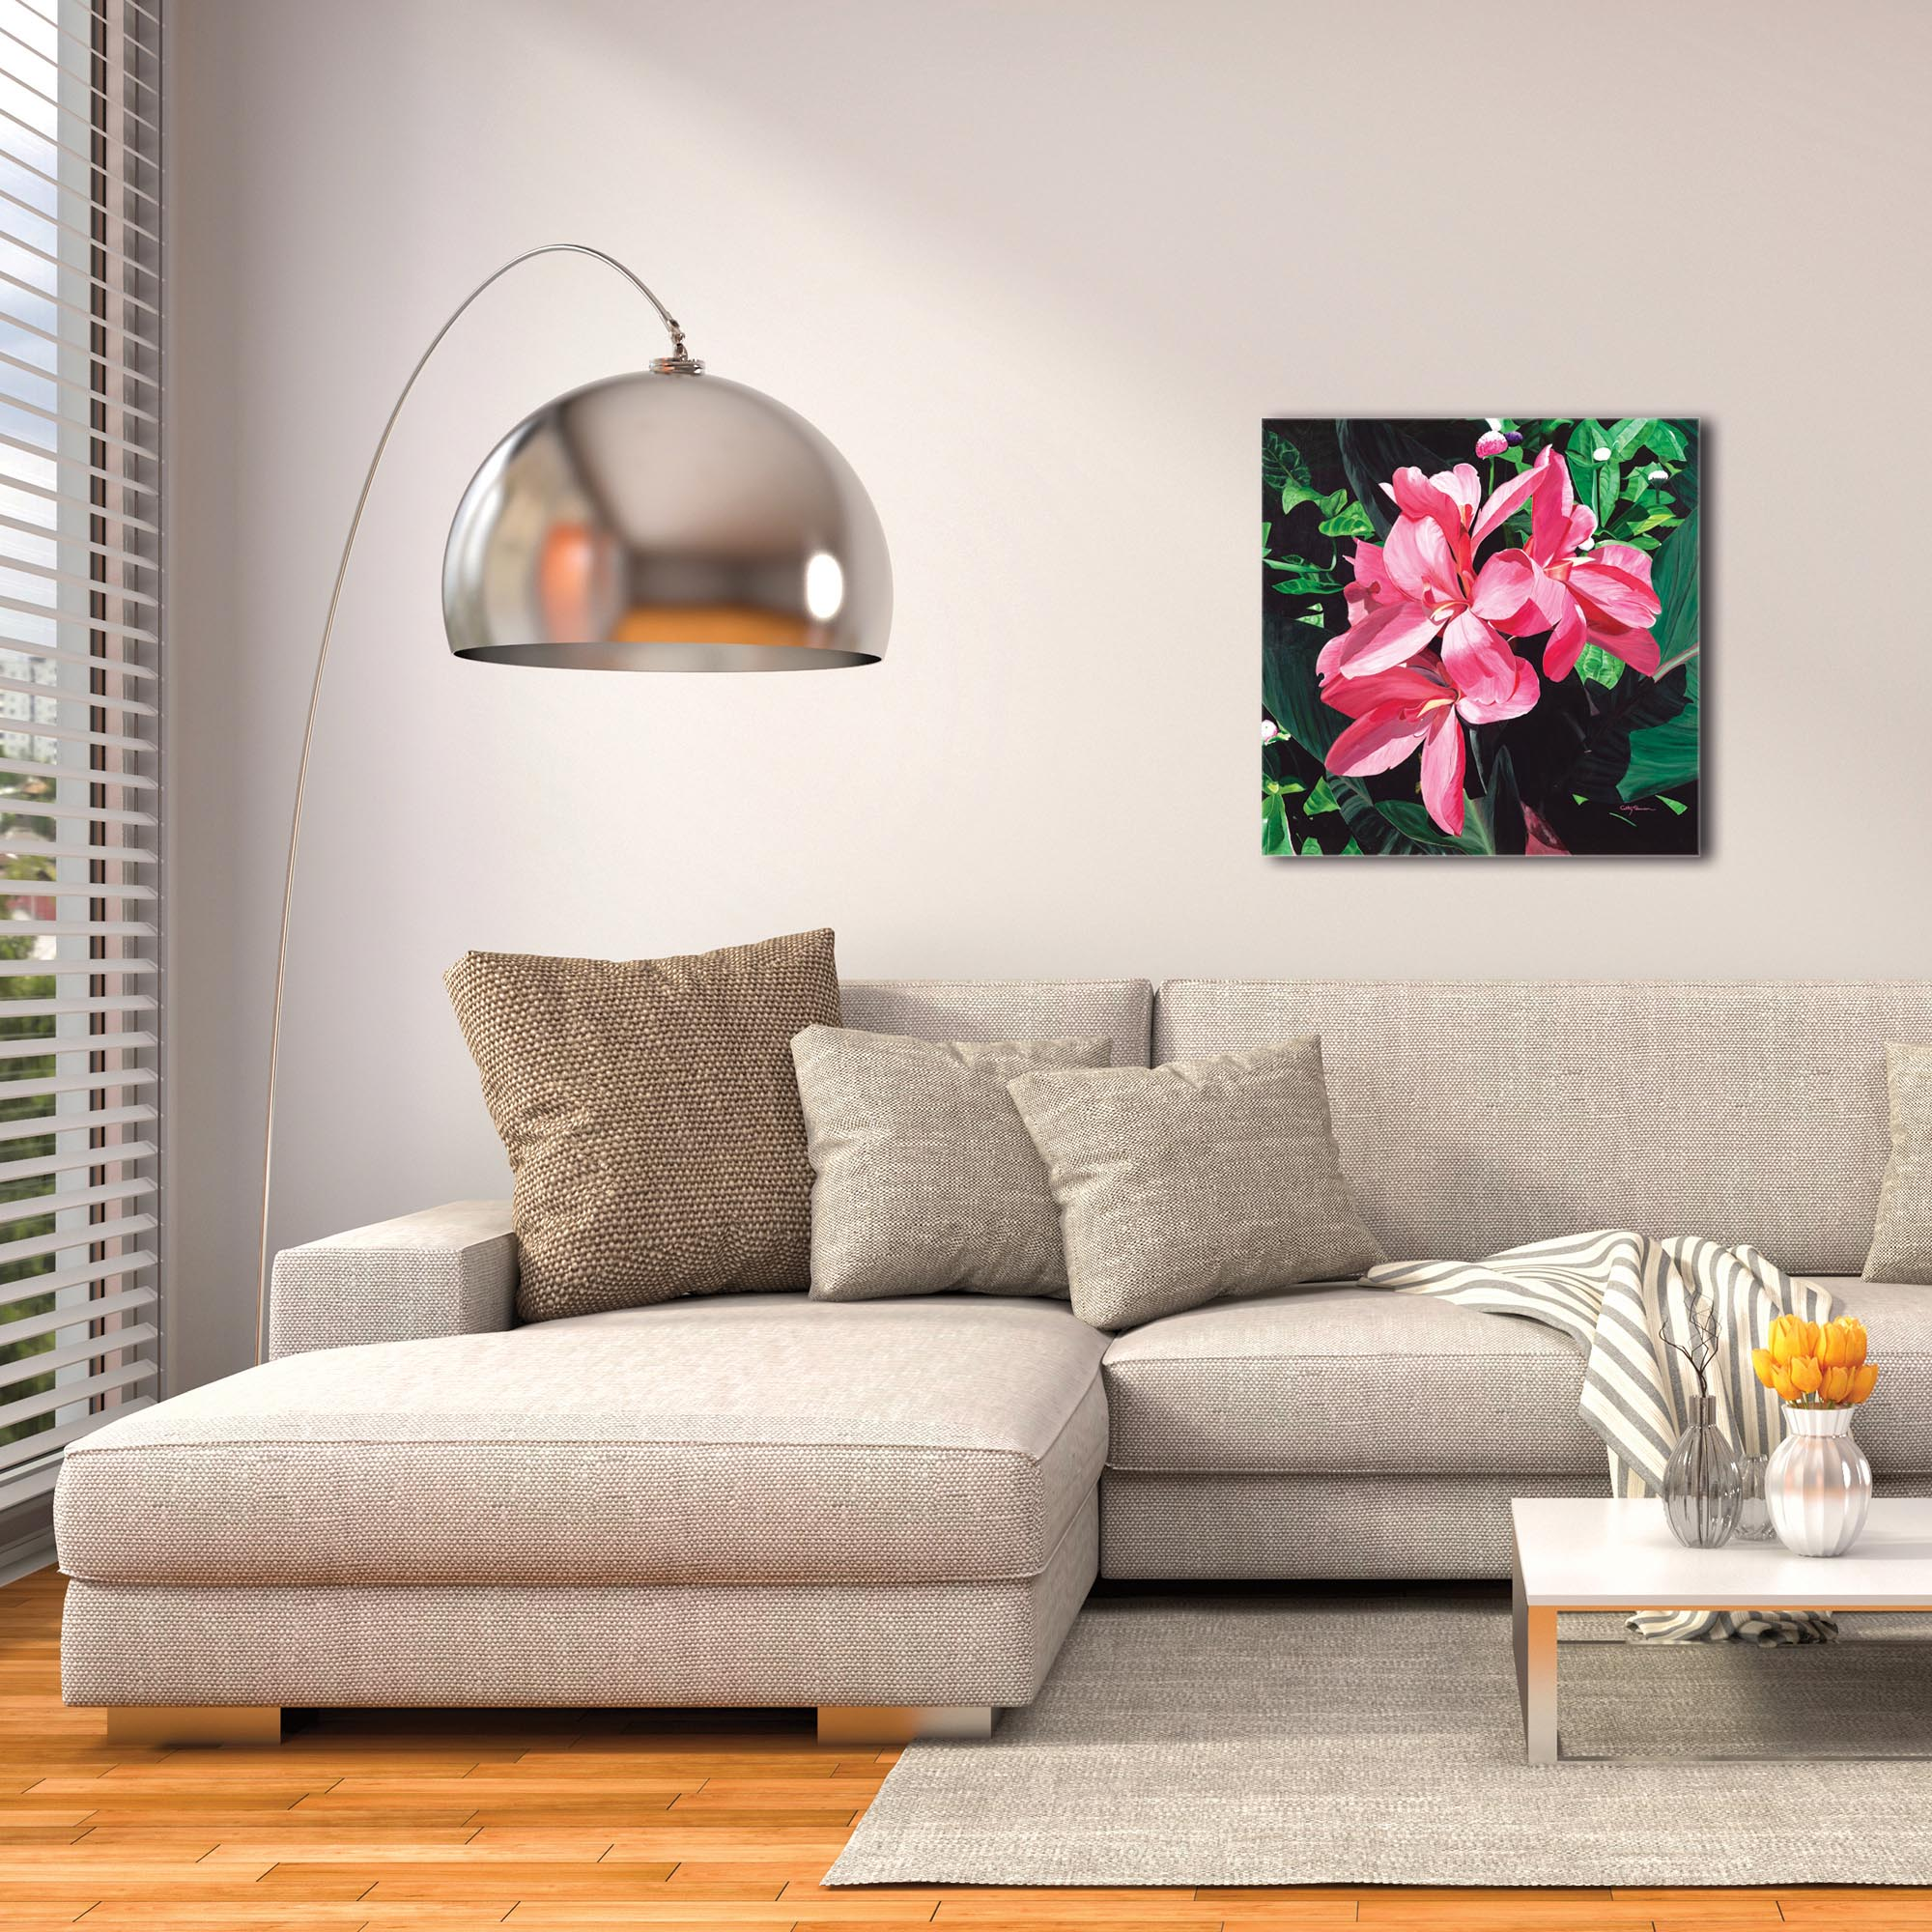 Traditional Wall Art 'Exotic Lilies' - Floral Decor on Metal or Plexiglass - Image 3